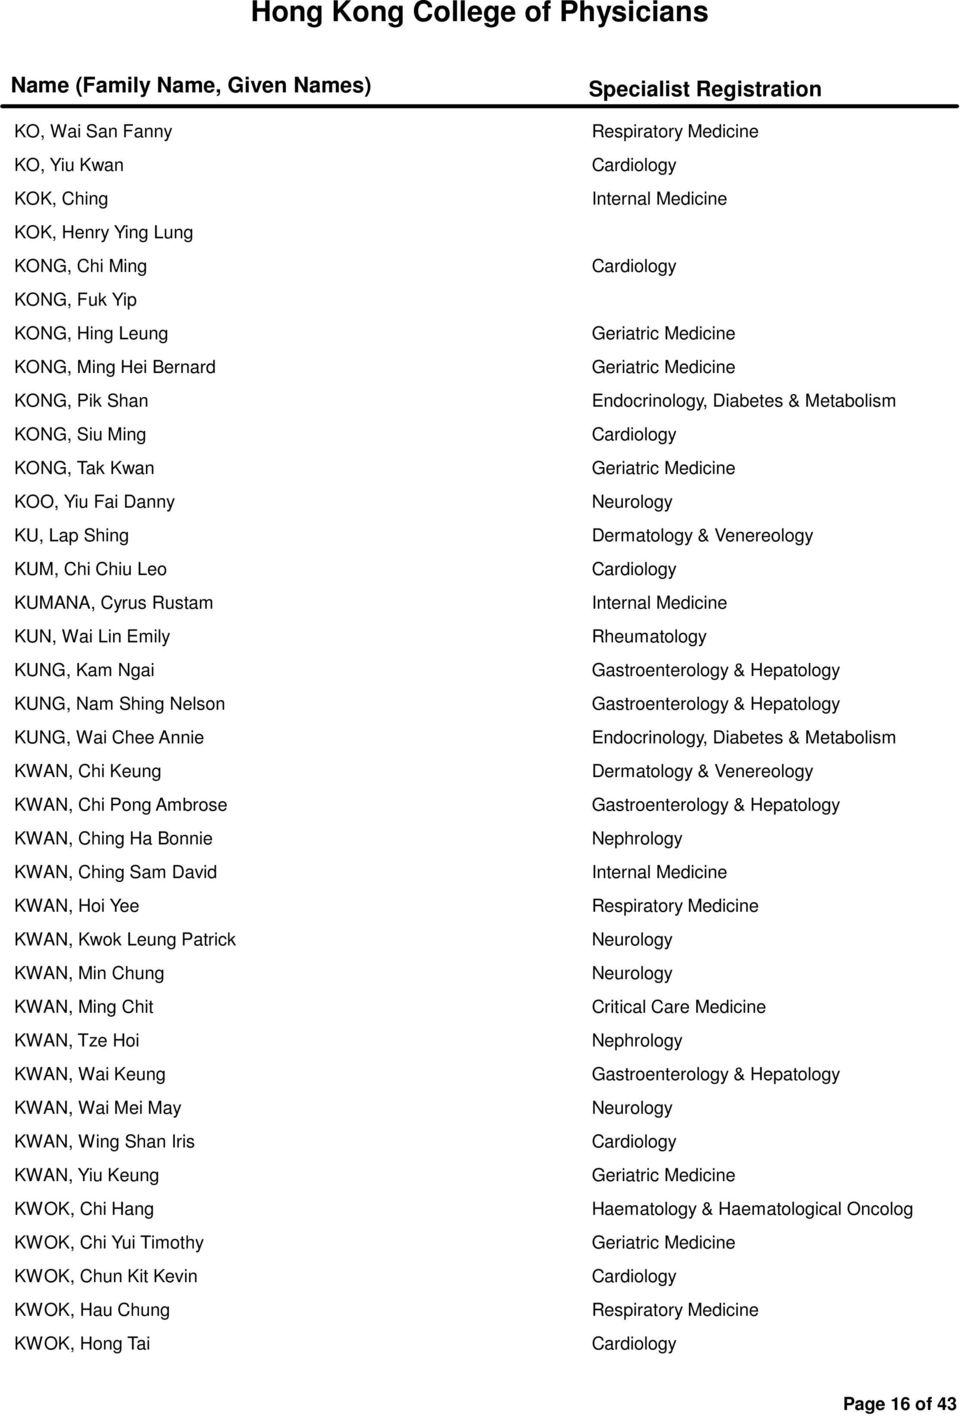 Hong Kong College of Physicians - PDF